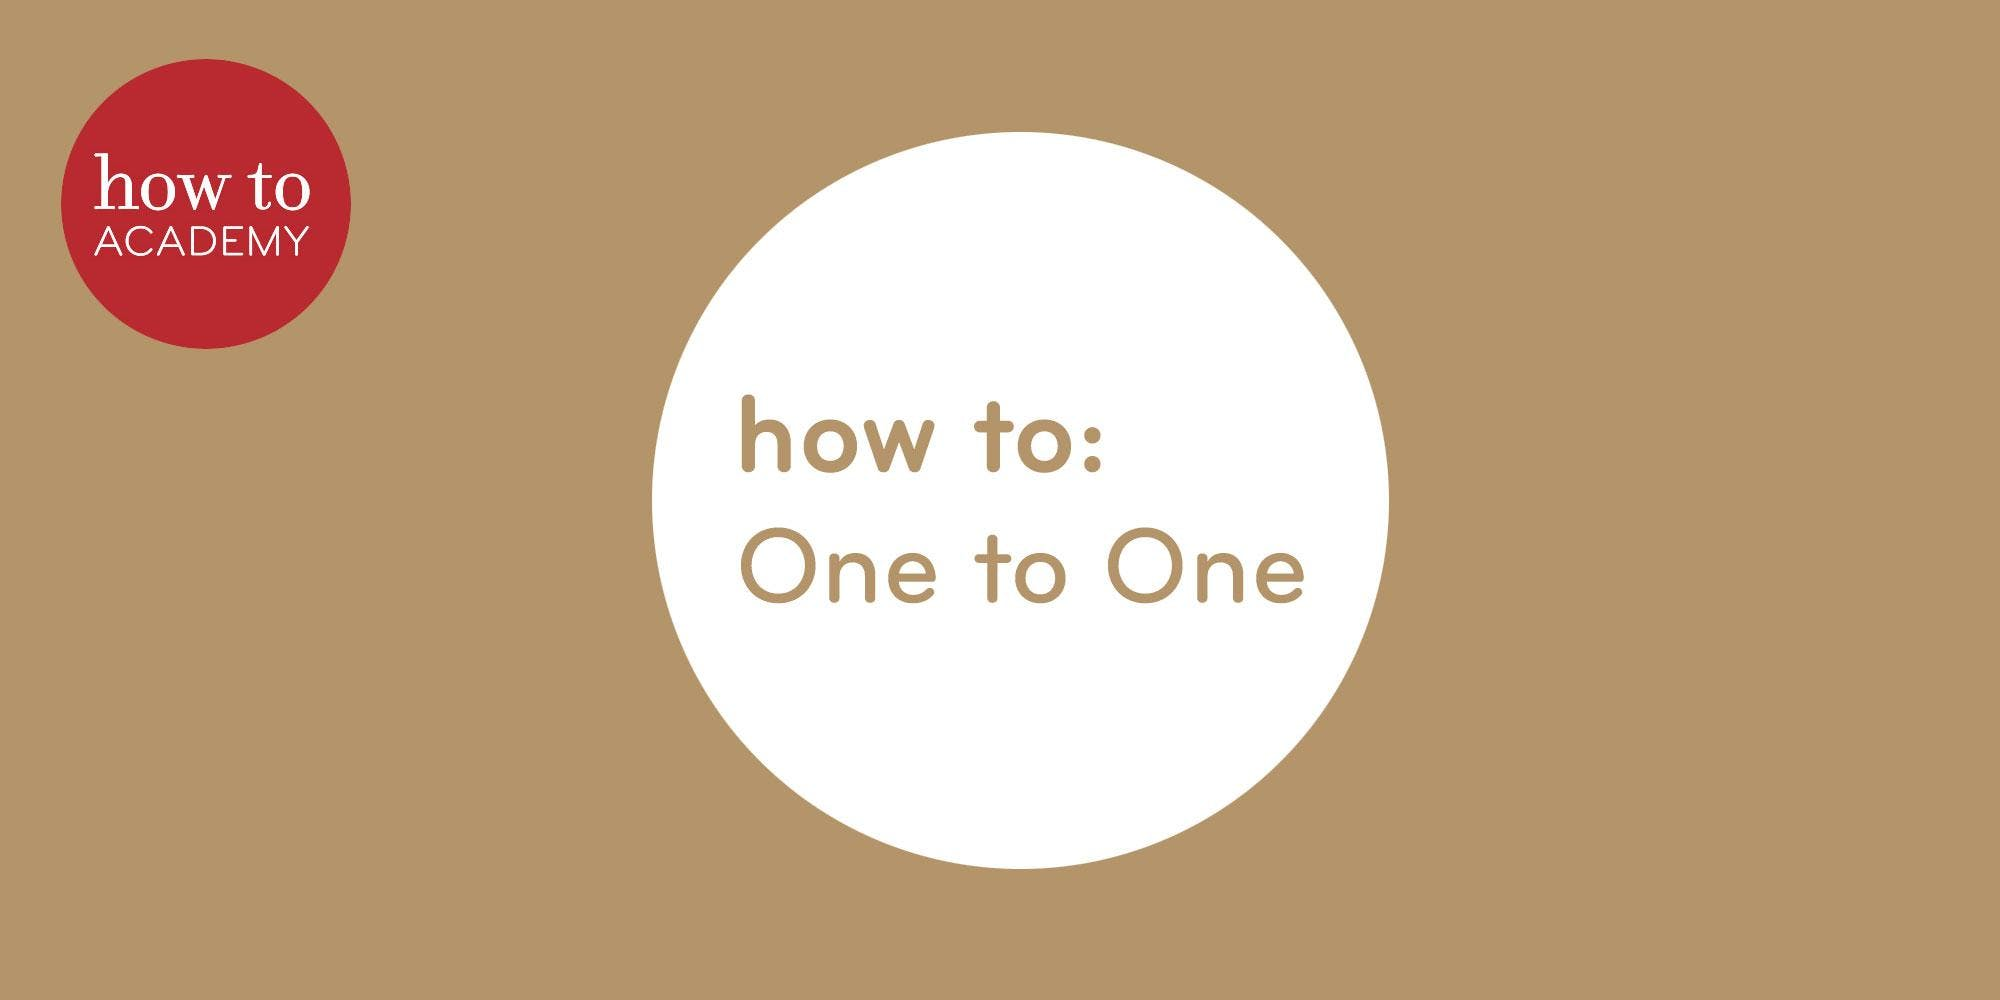 Edie Lush One to One: how to: Interview for University or a First Job